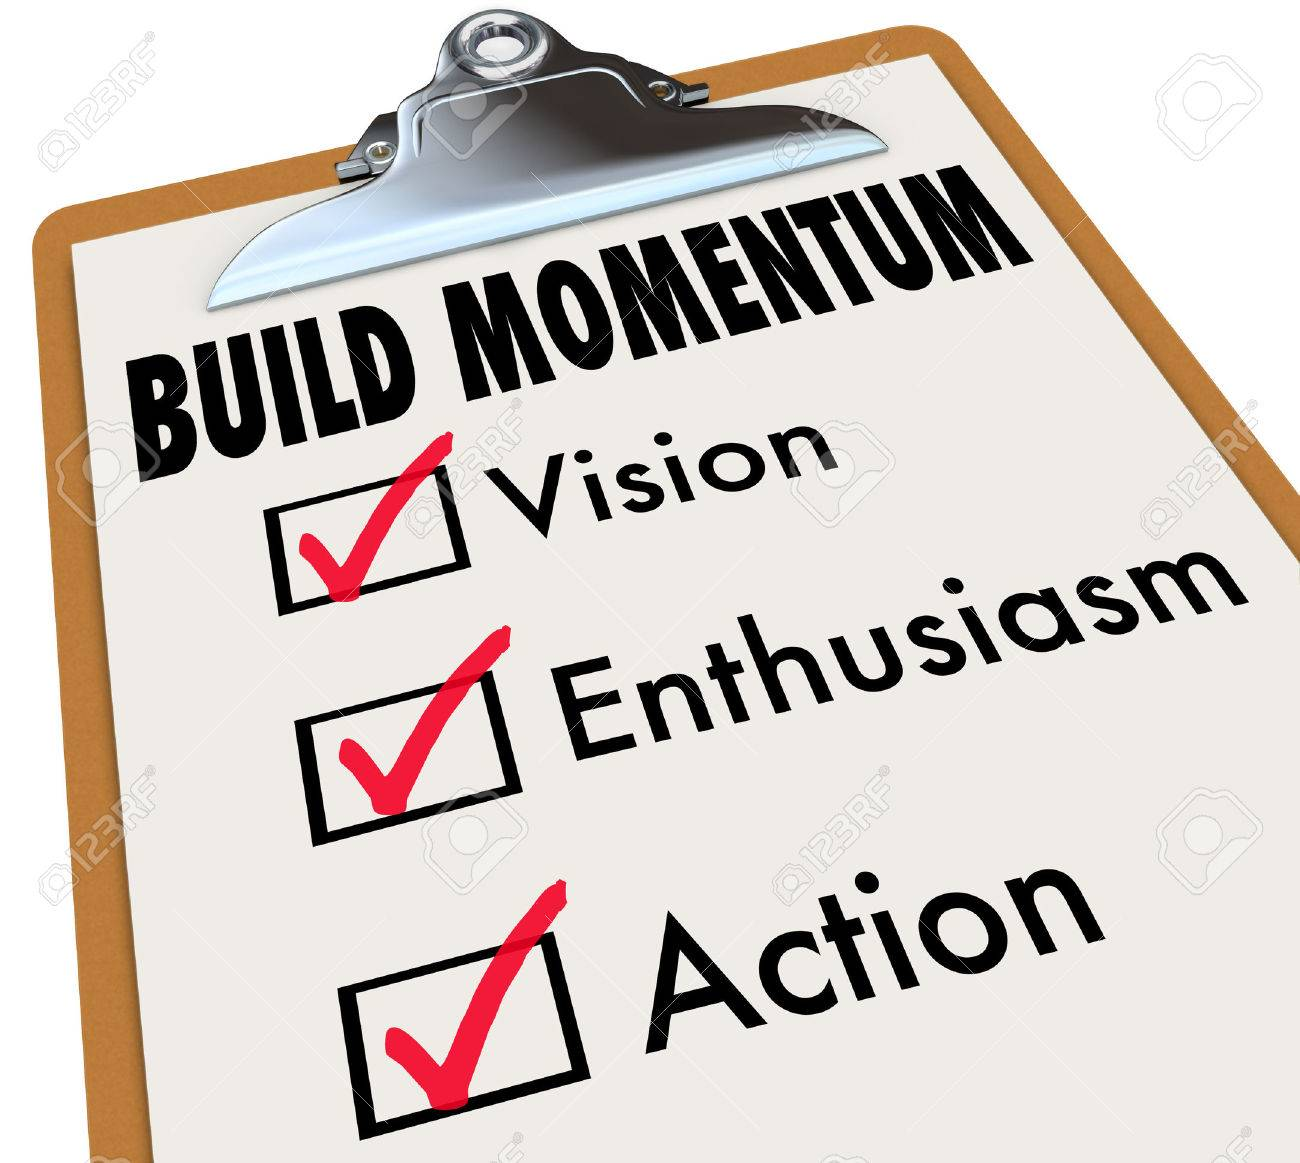 Image result for build momentum